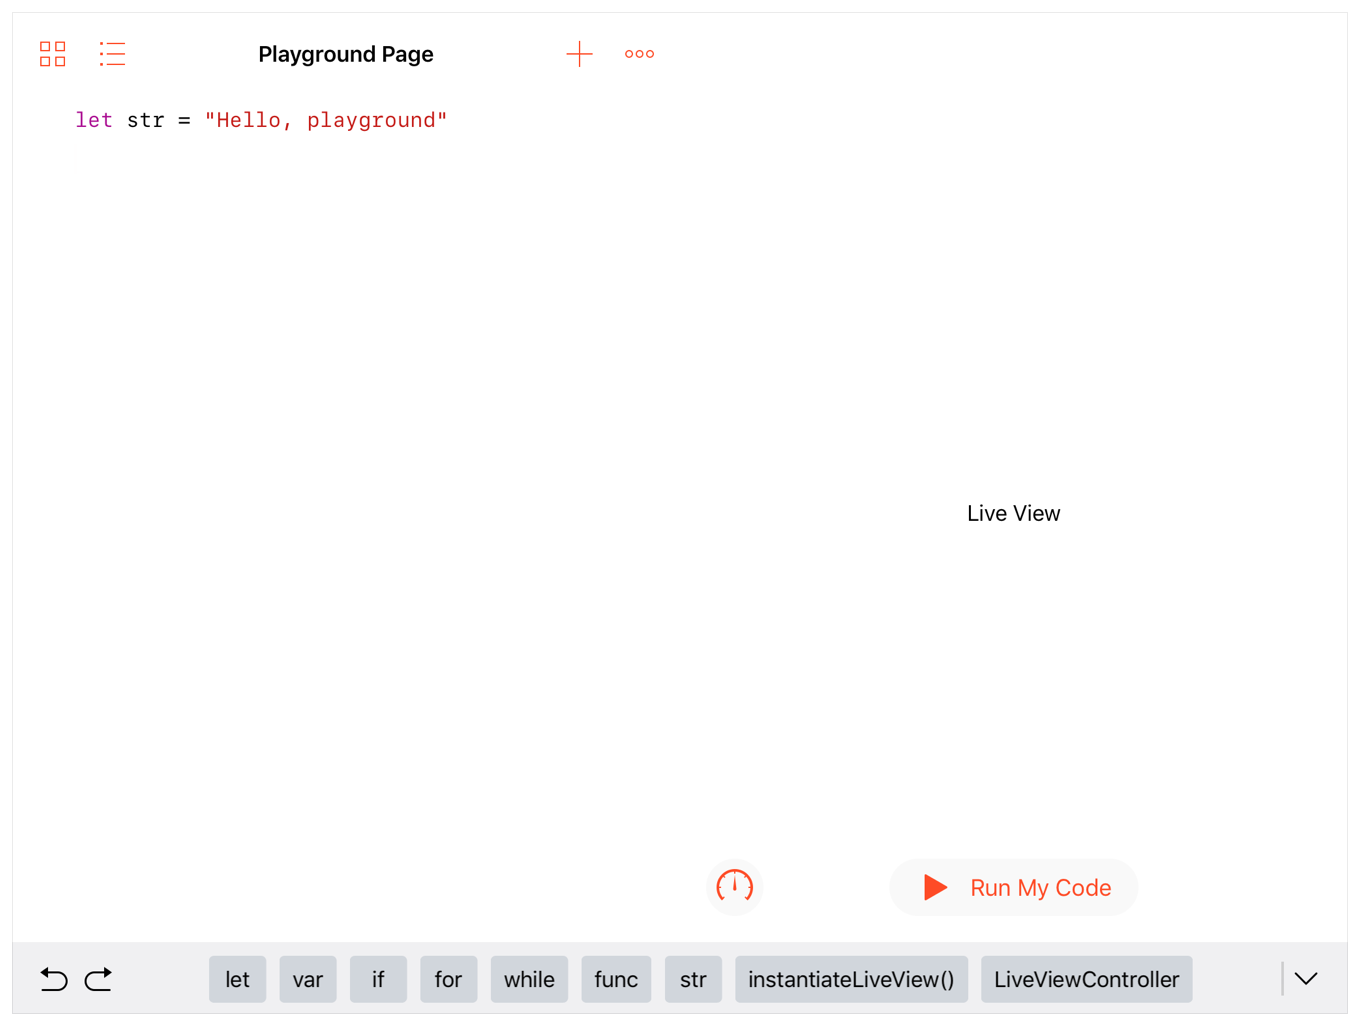 Screenshot showing a playground page with a variable declaration in the code editor, and text field in the live view with the text, Live View.